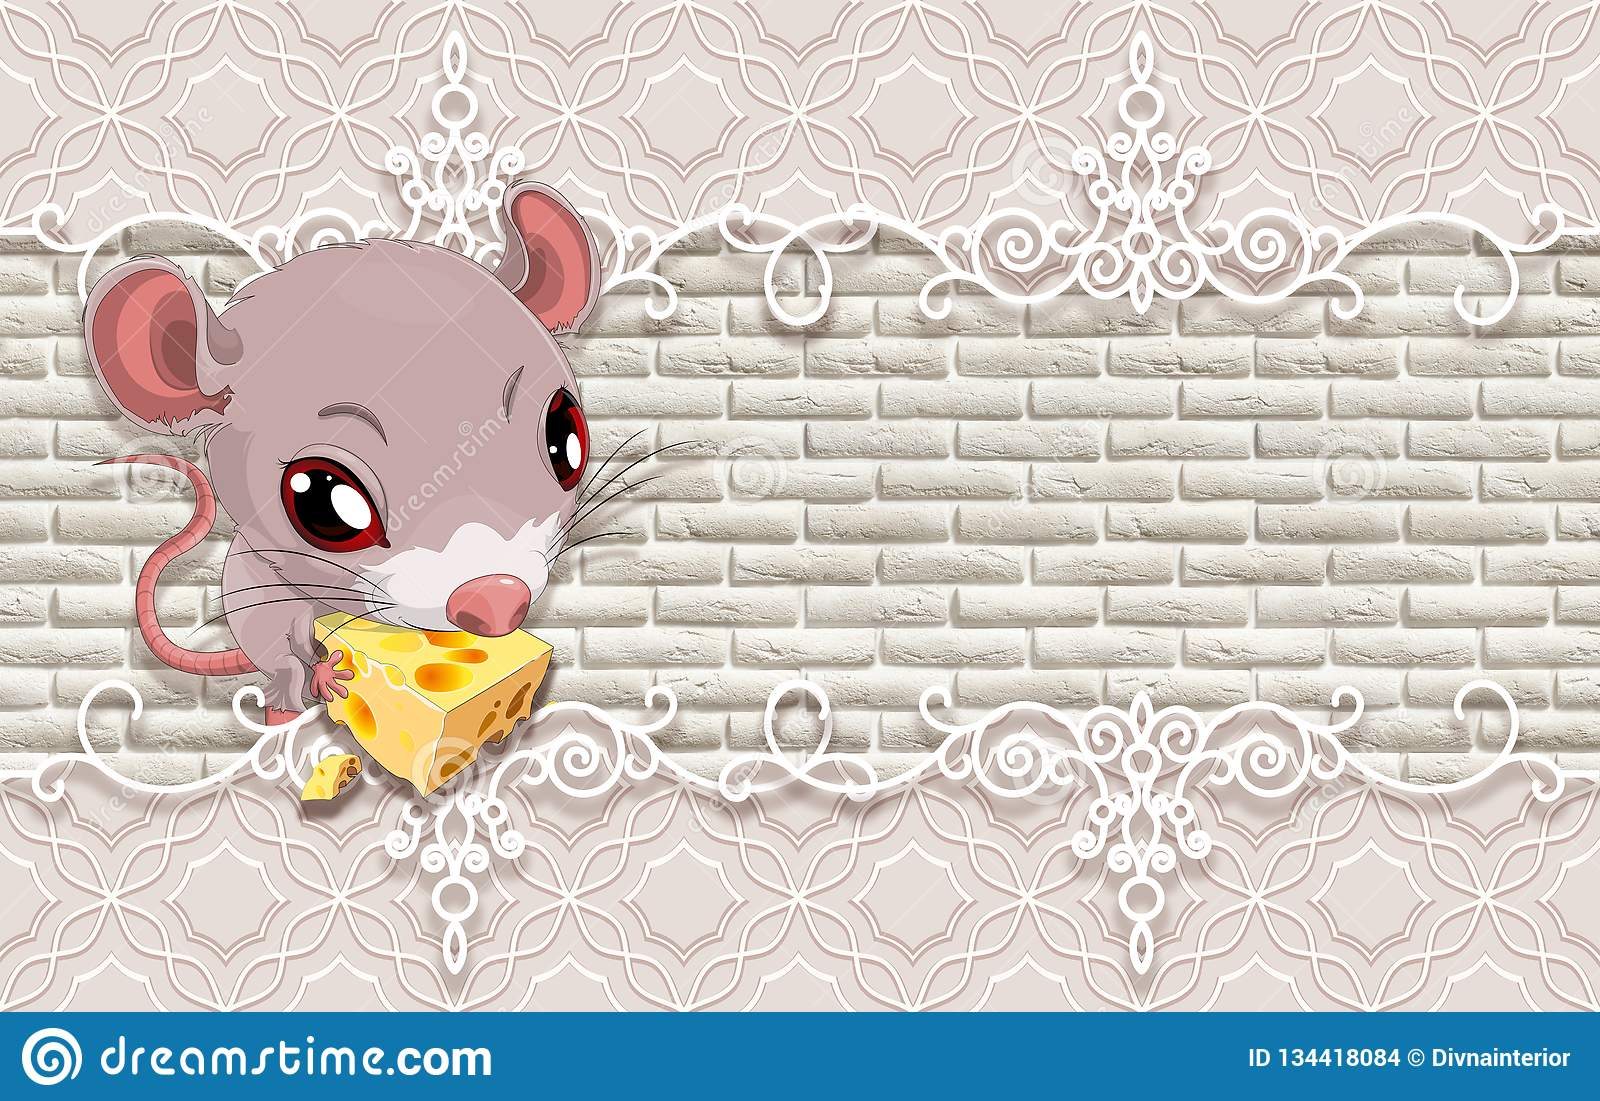 3d Wallpaper Cute Baby Background With Mouse Stock